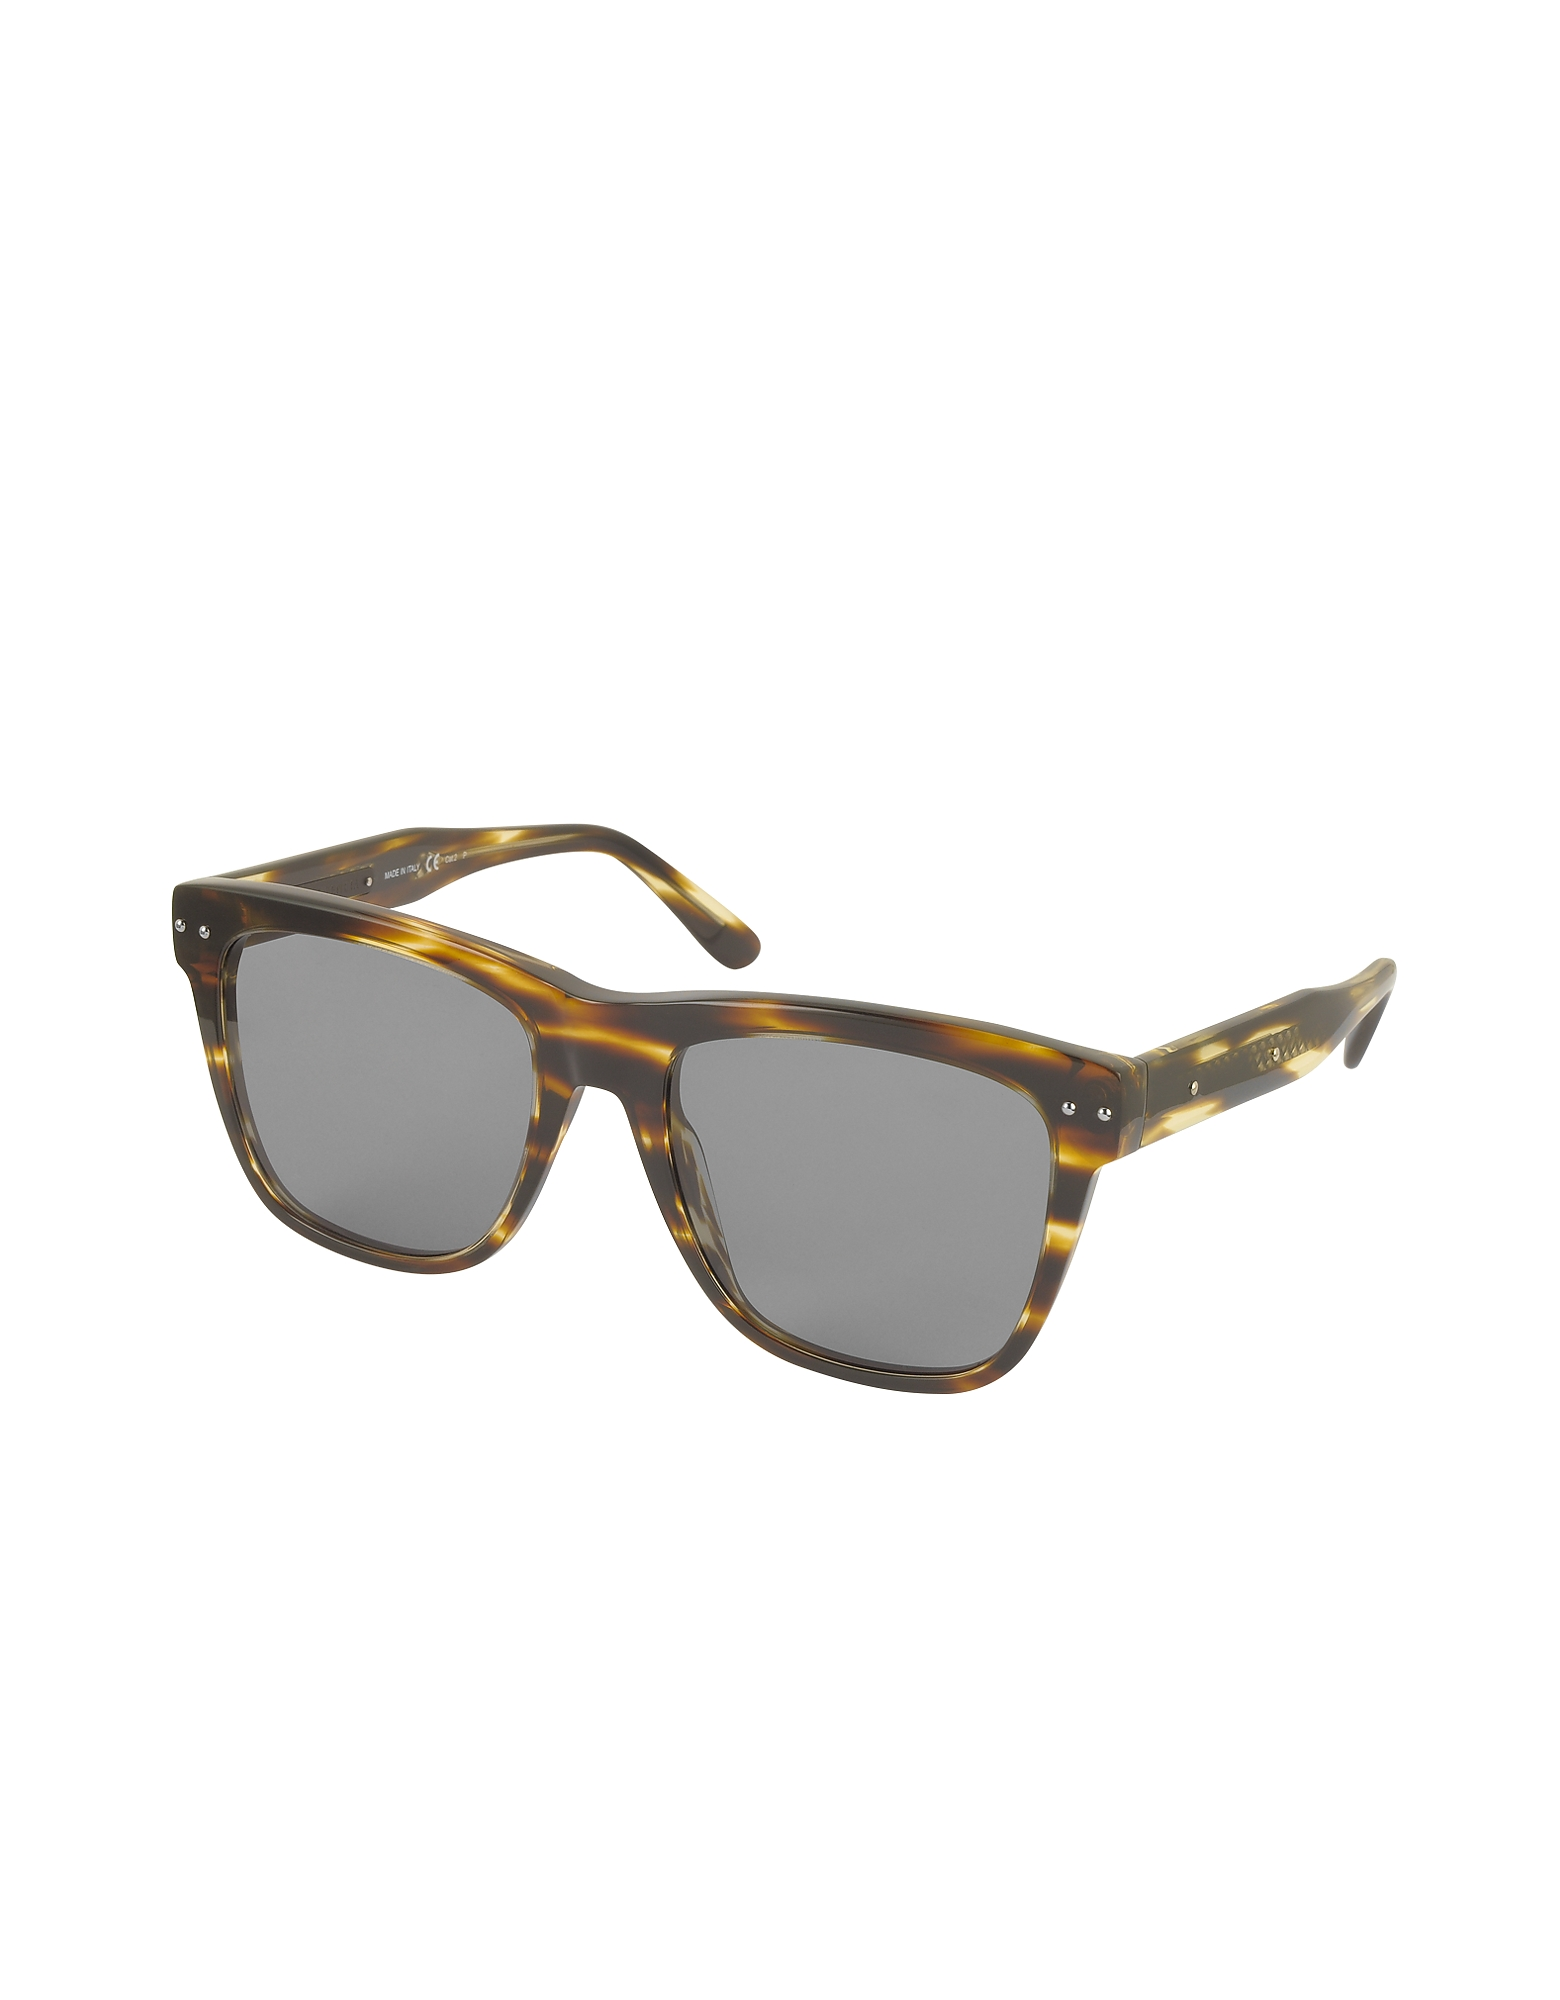 BV0098S 002 Light Havana Acetate Frame Unisex Sunglasses от Forzieri.com INT